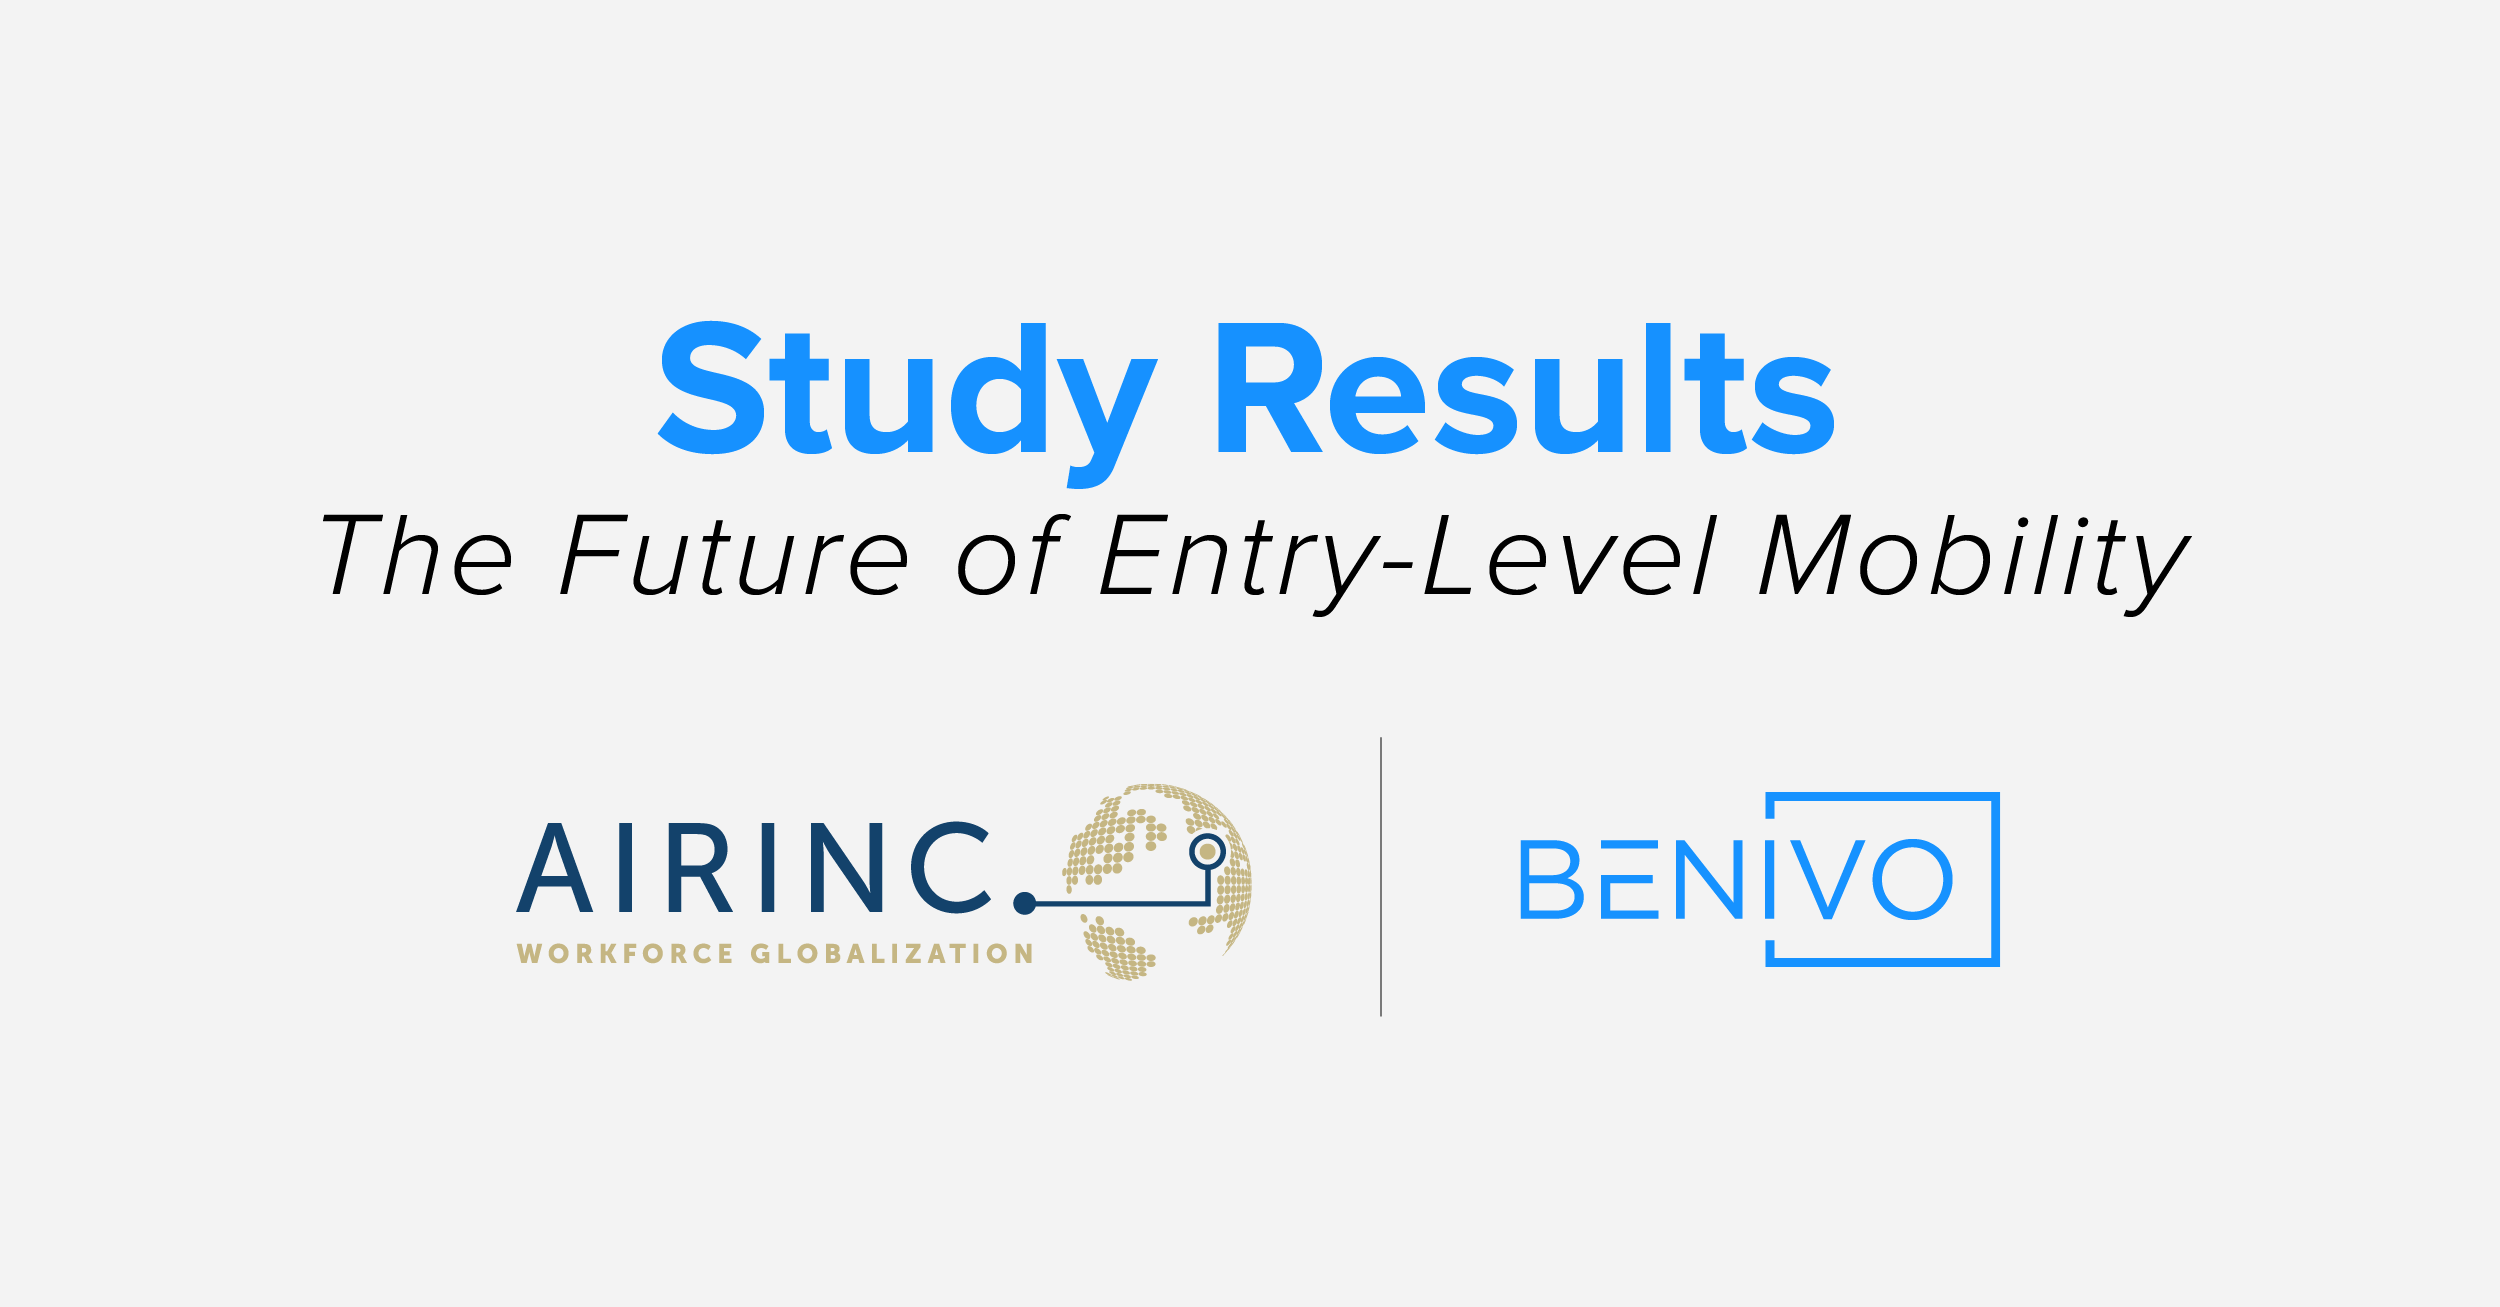 Study Results - The Future of Entry-Level Mobility by AIRINC and Benivo